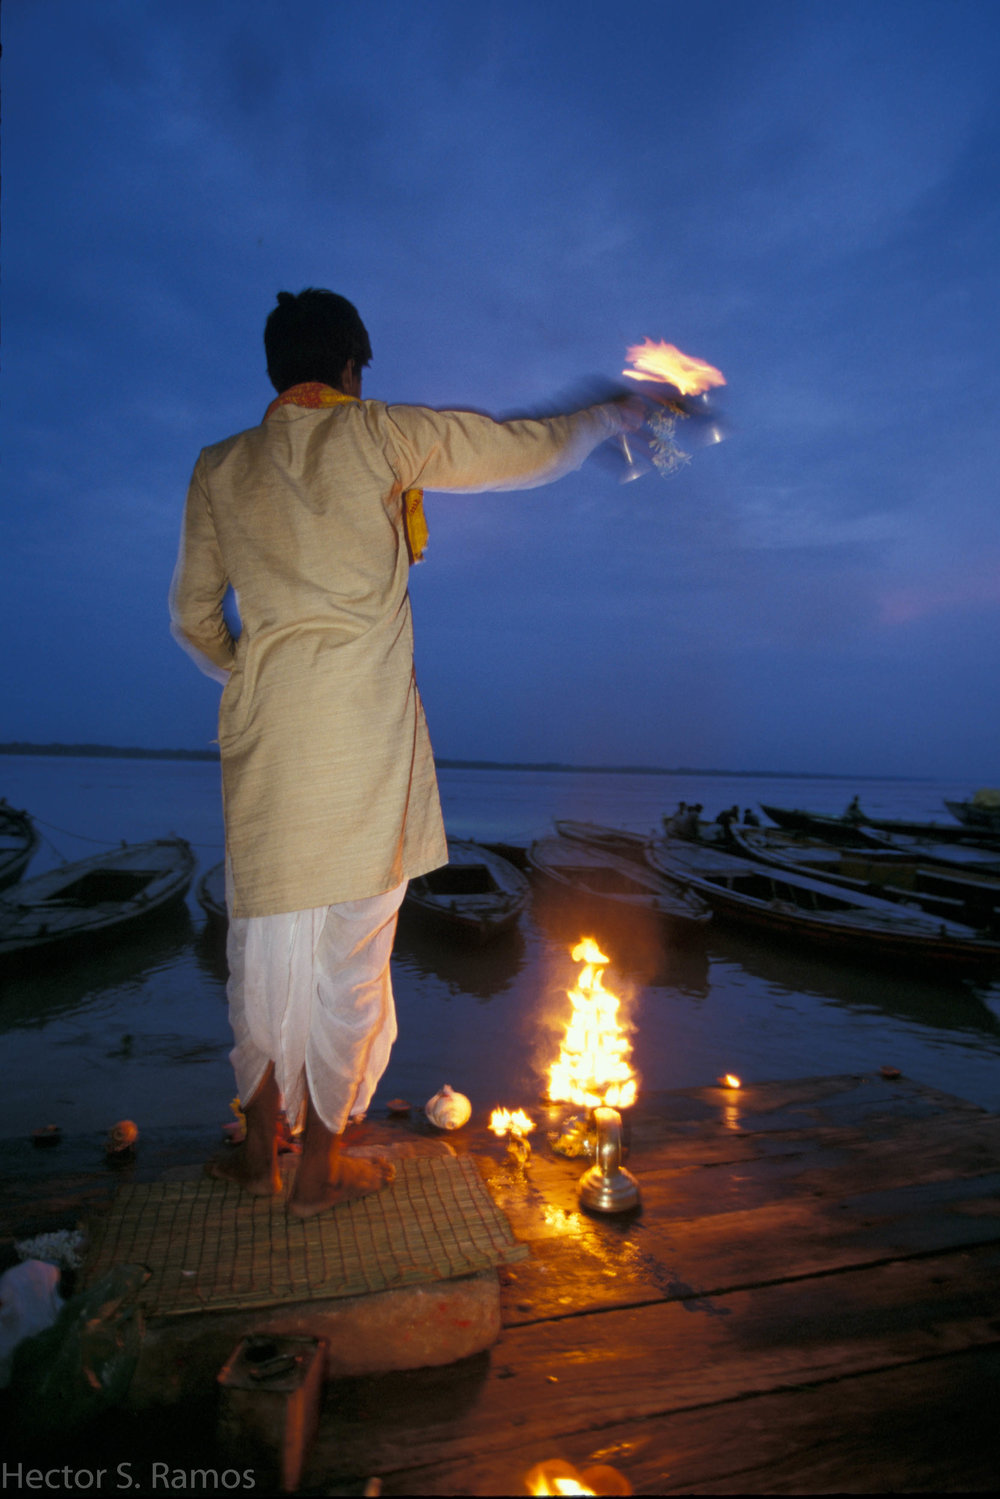 Evening aarti.  Varanasi.  During a monsoon there were not many people at the river Ganga. This pujari kept up with his daily ritual alone.  It was beautiful to witness - sincere devotion.  It brought deep stillness in me.  Photo: Nikon F5, 20-35mm f2.8, SB-28 flash, Provia 100.